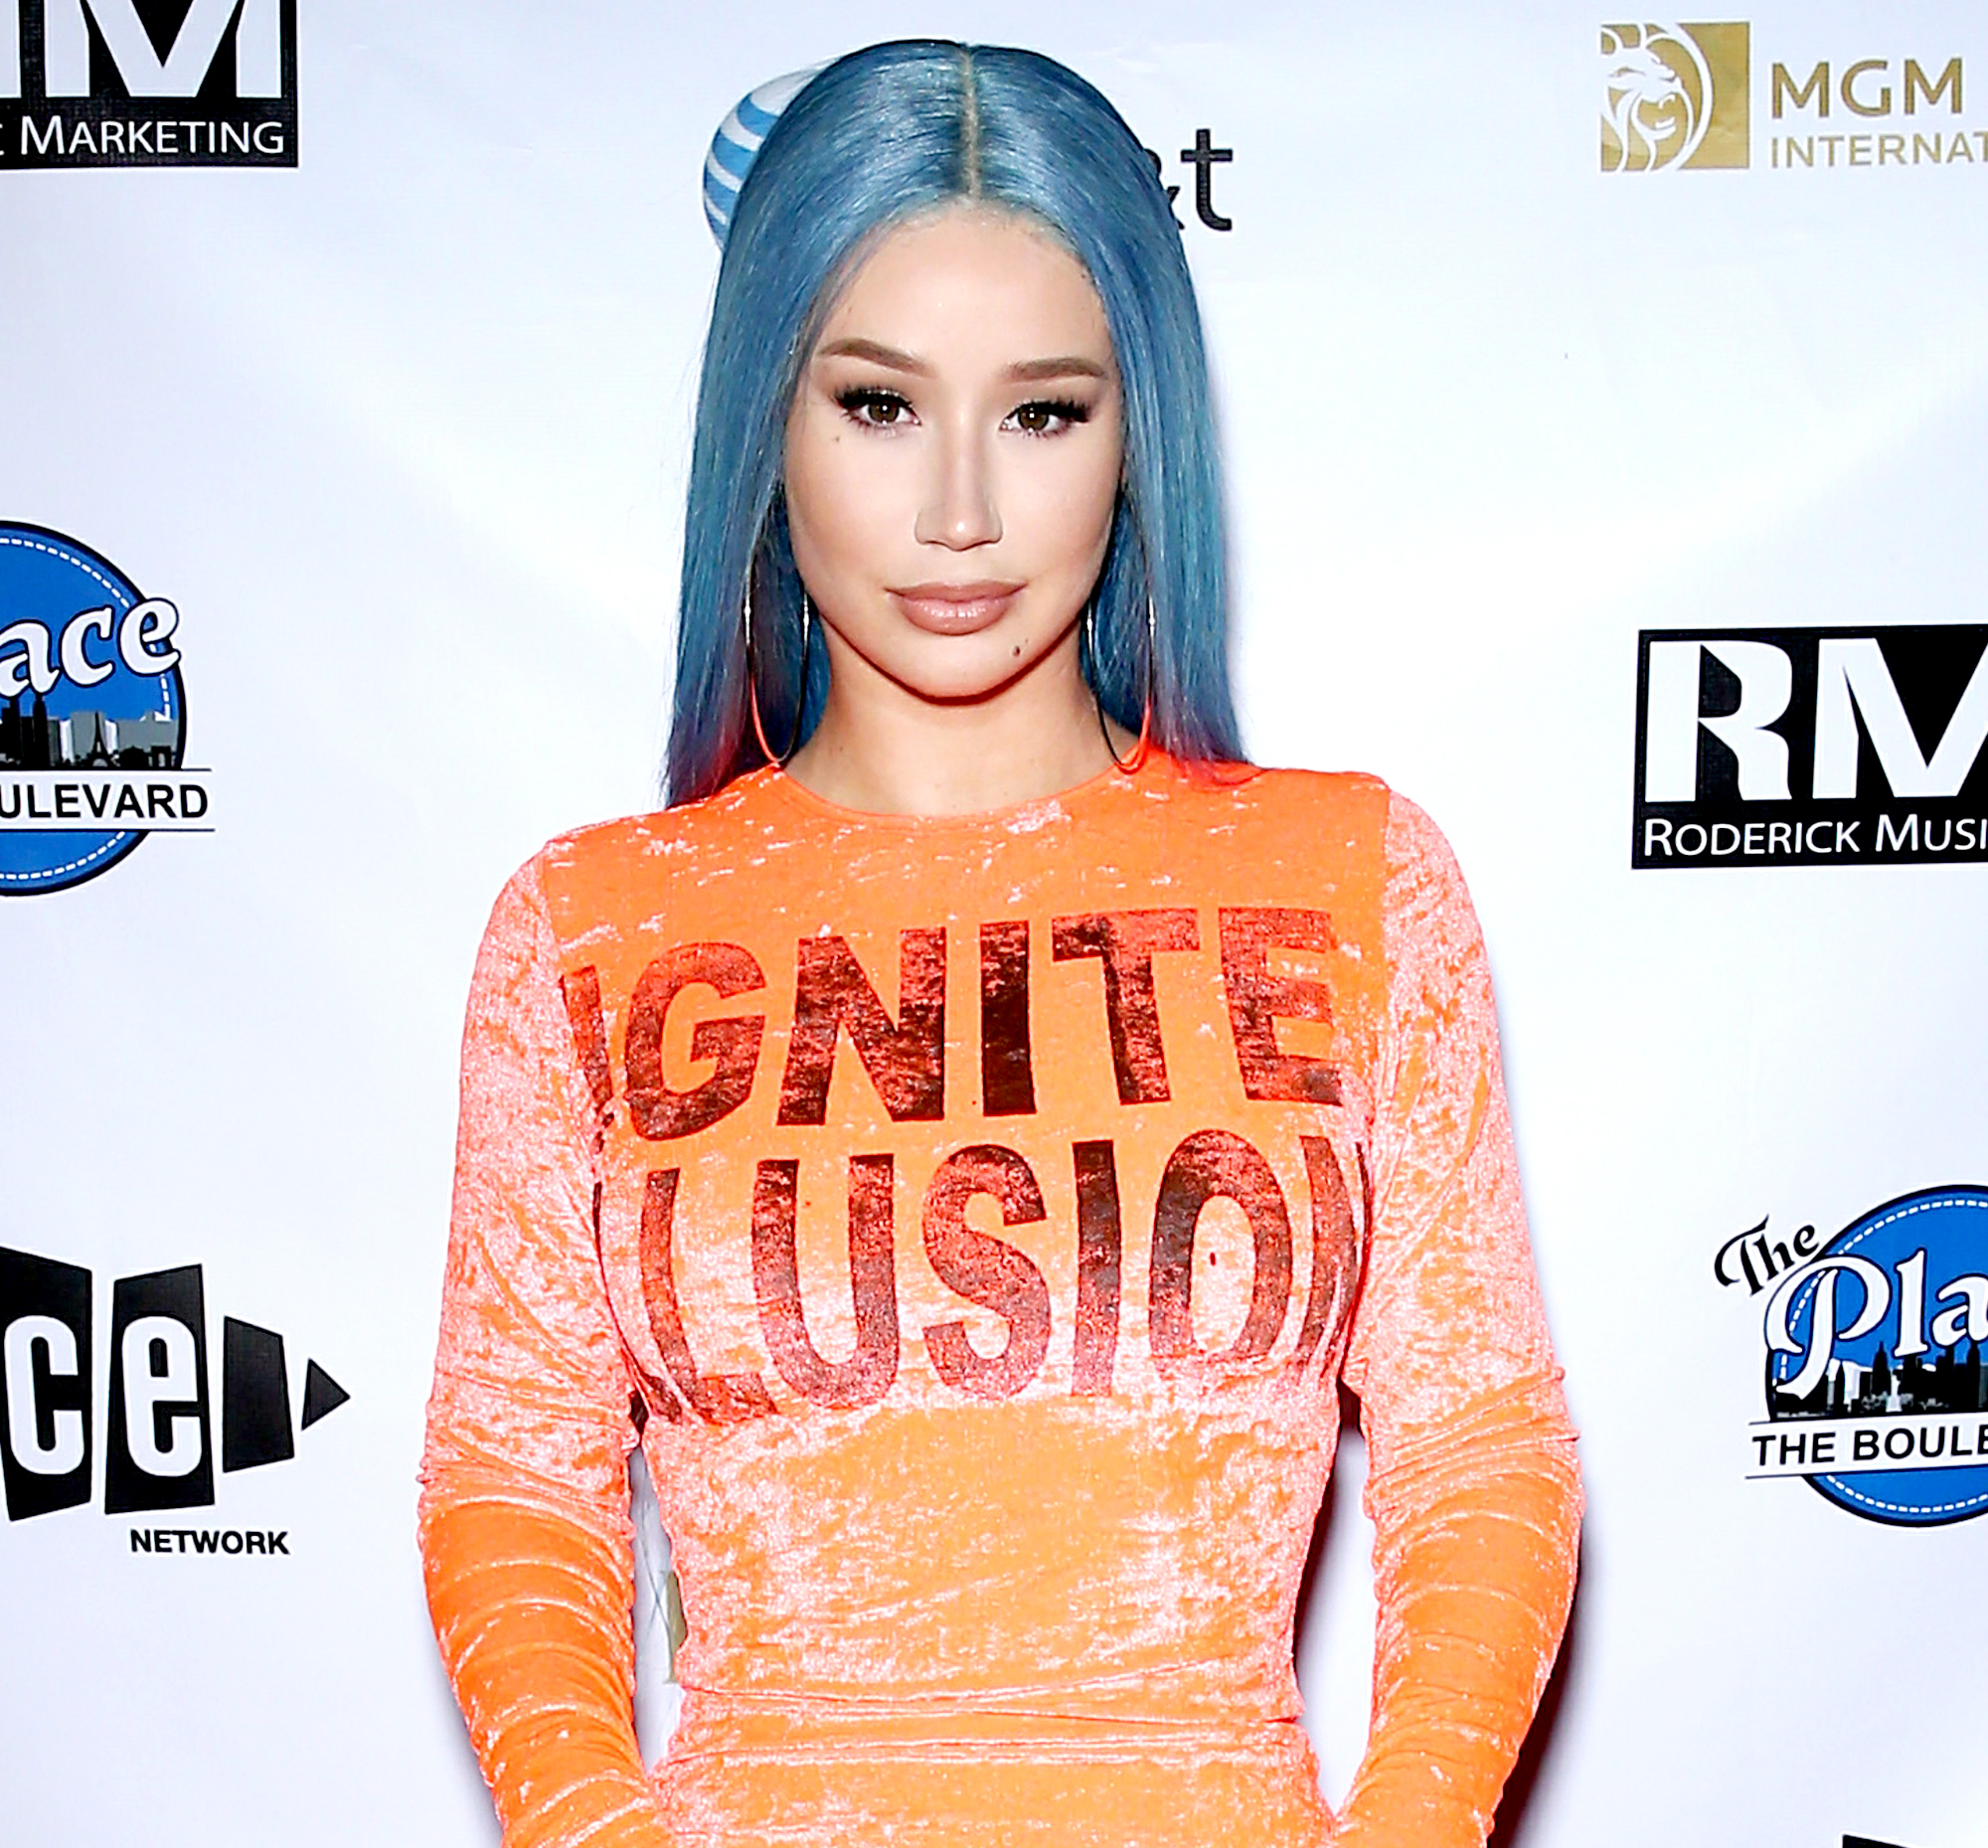 Iggy-Azalea-Gets-Real-About-Her-Stay-at-a-Mental-Health-Retreat